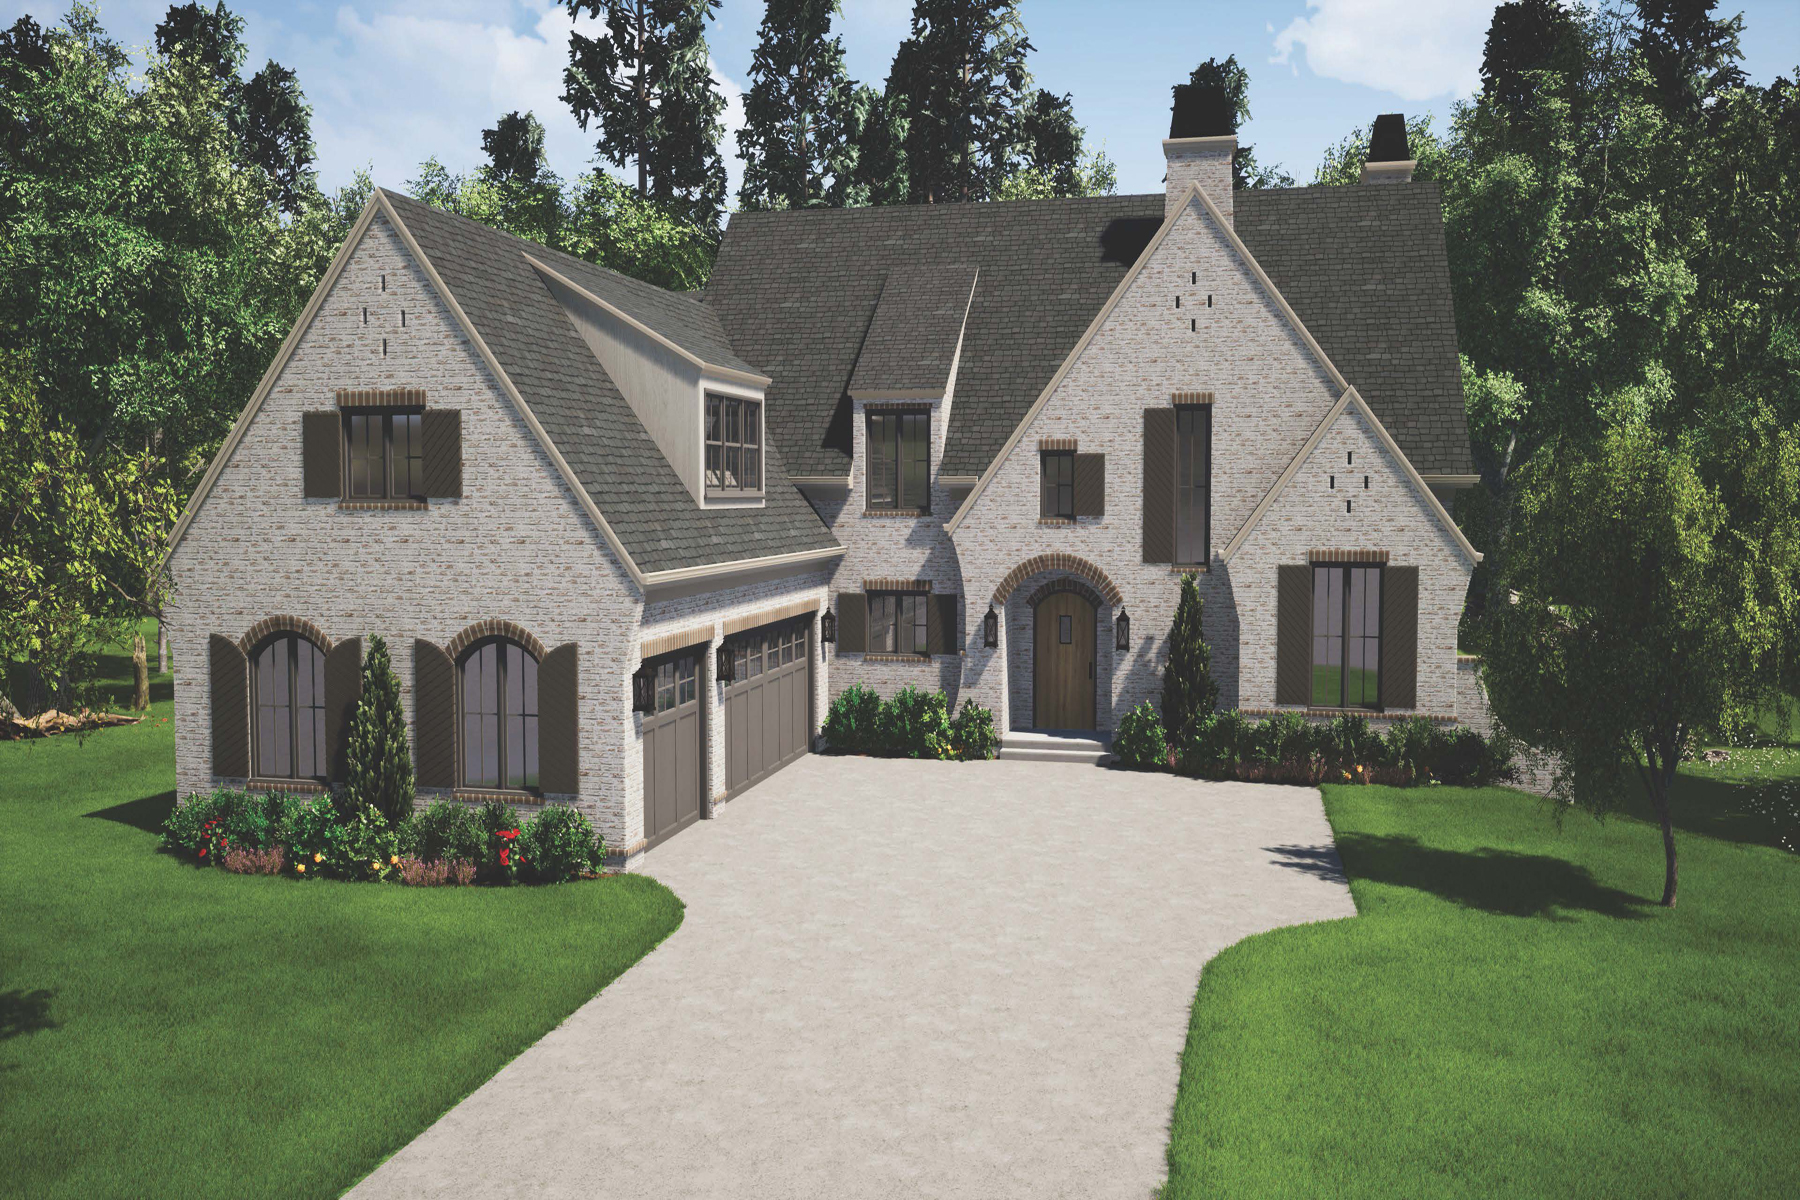 Single Family Homes for Active at The Manor Cottages 3585 Granton Street Alpharetta, Georgia 30004 United States